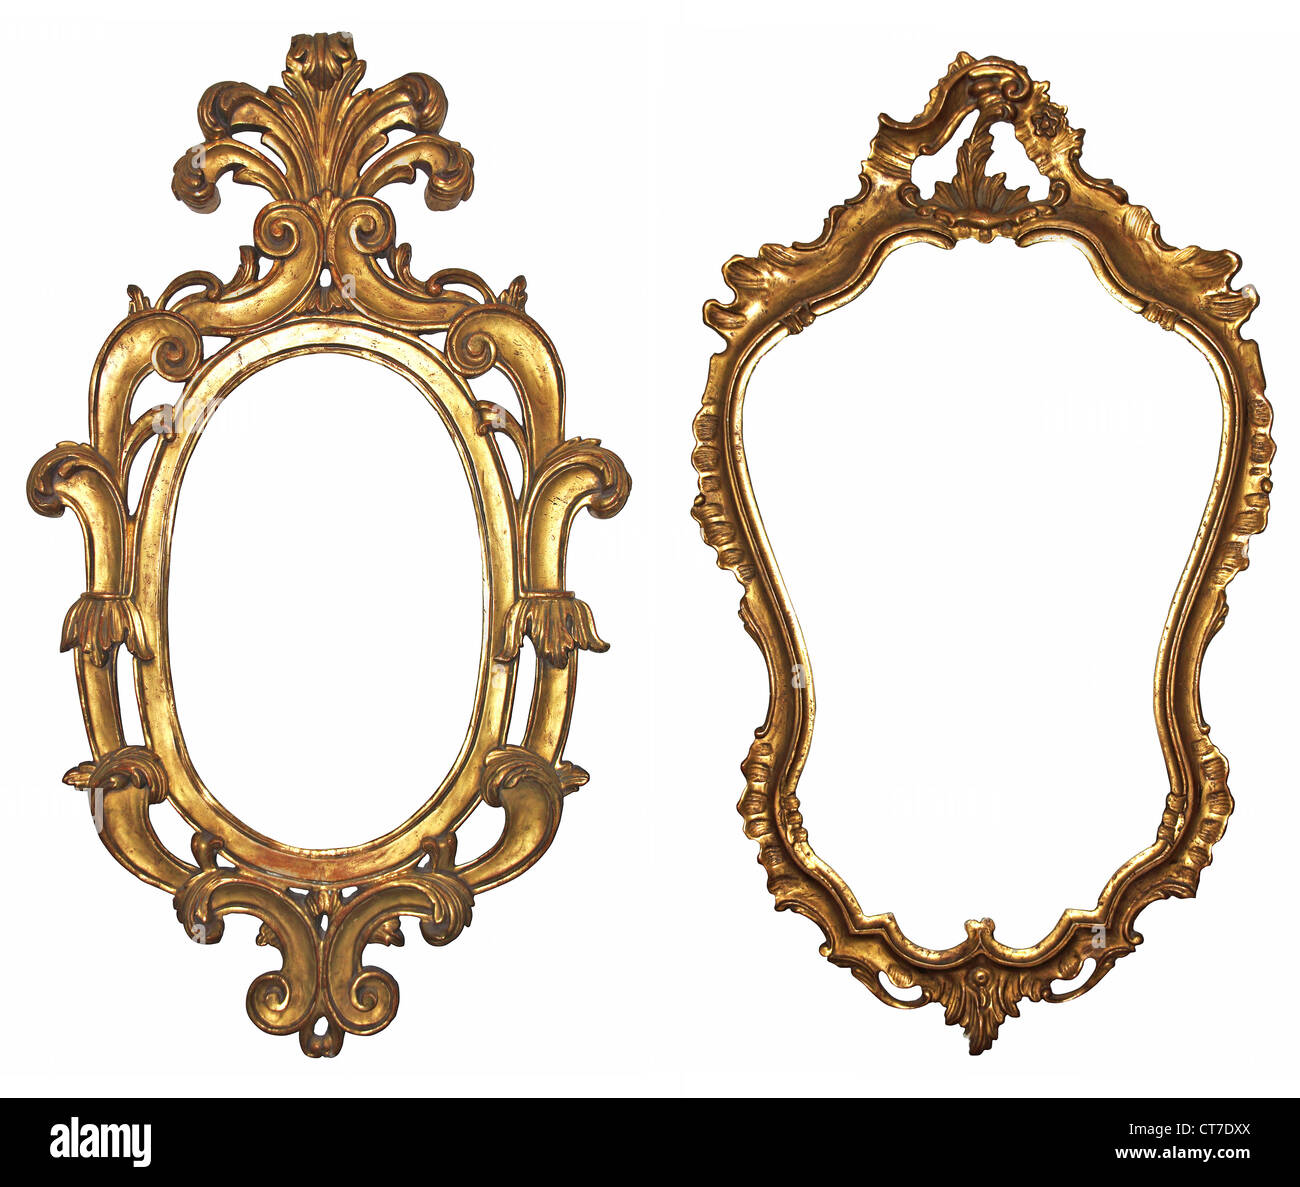 Old gilded wooden frames for mirrors - Stock Image